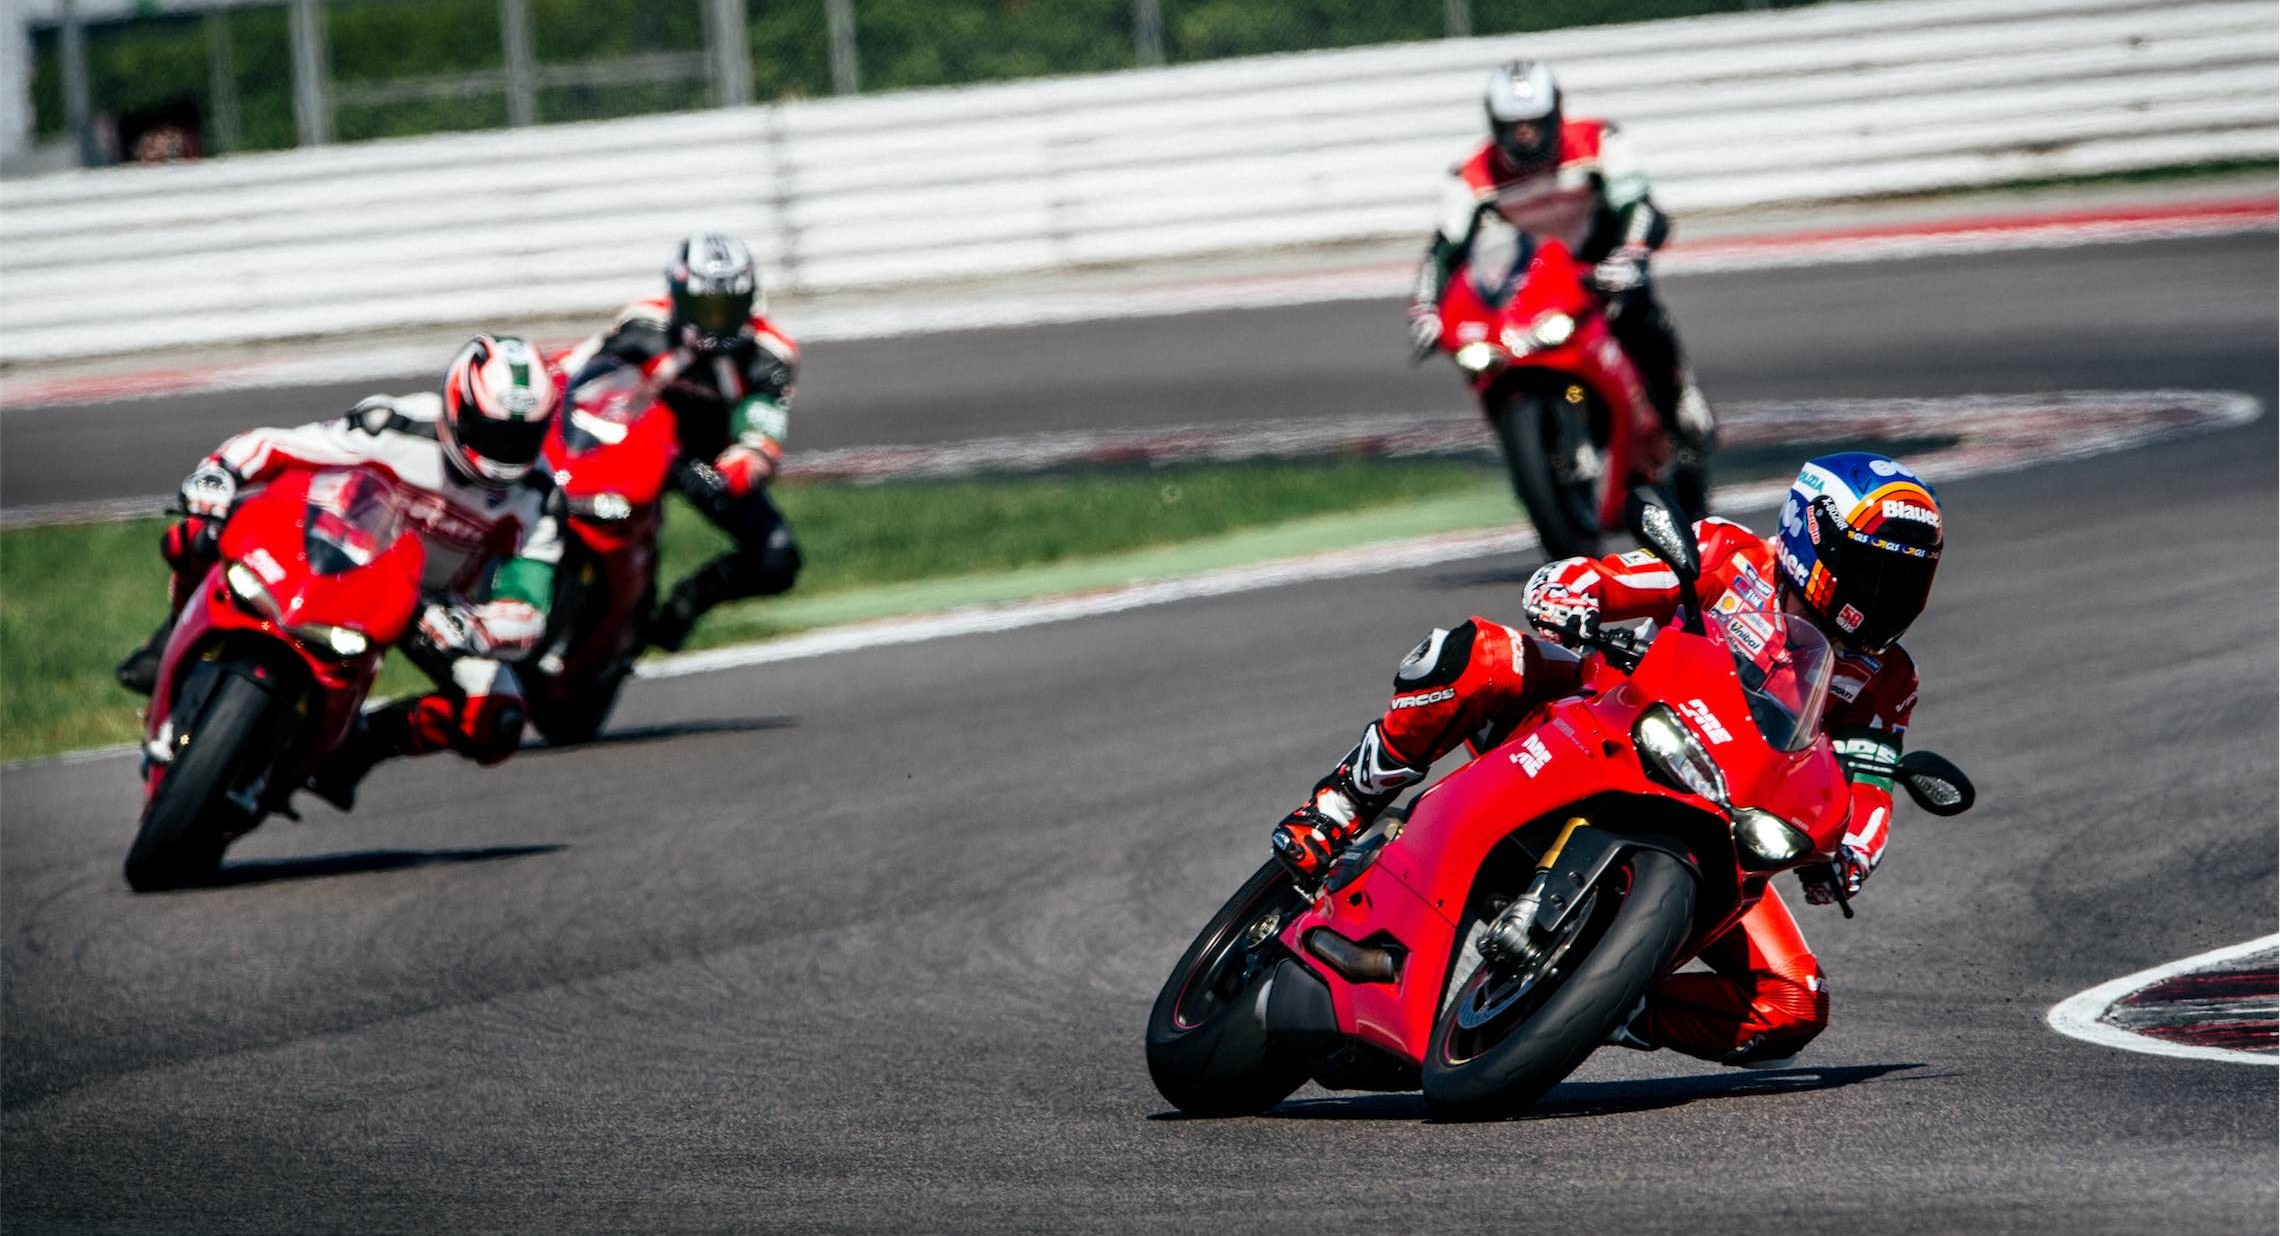 The Ducati Riding Academy gets a serious update for 2019